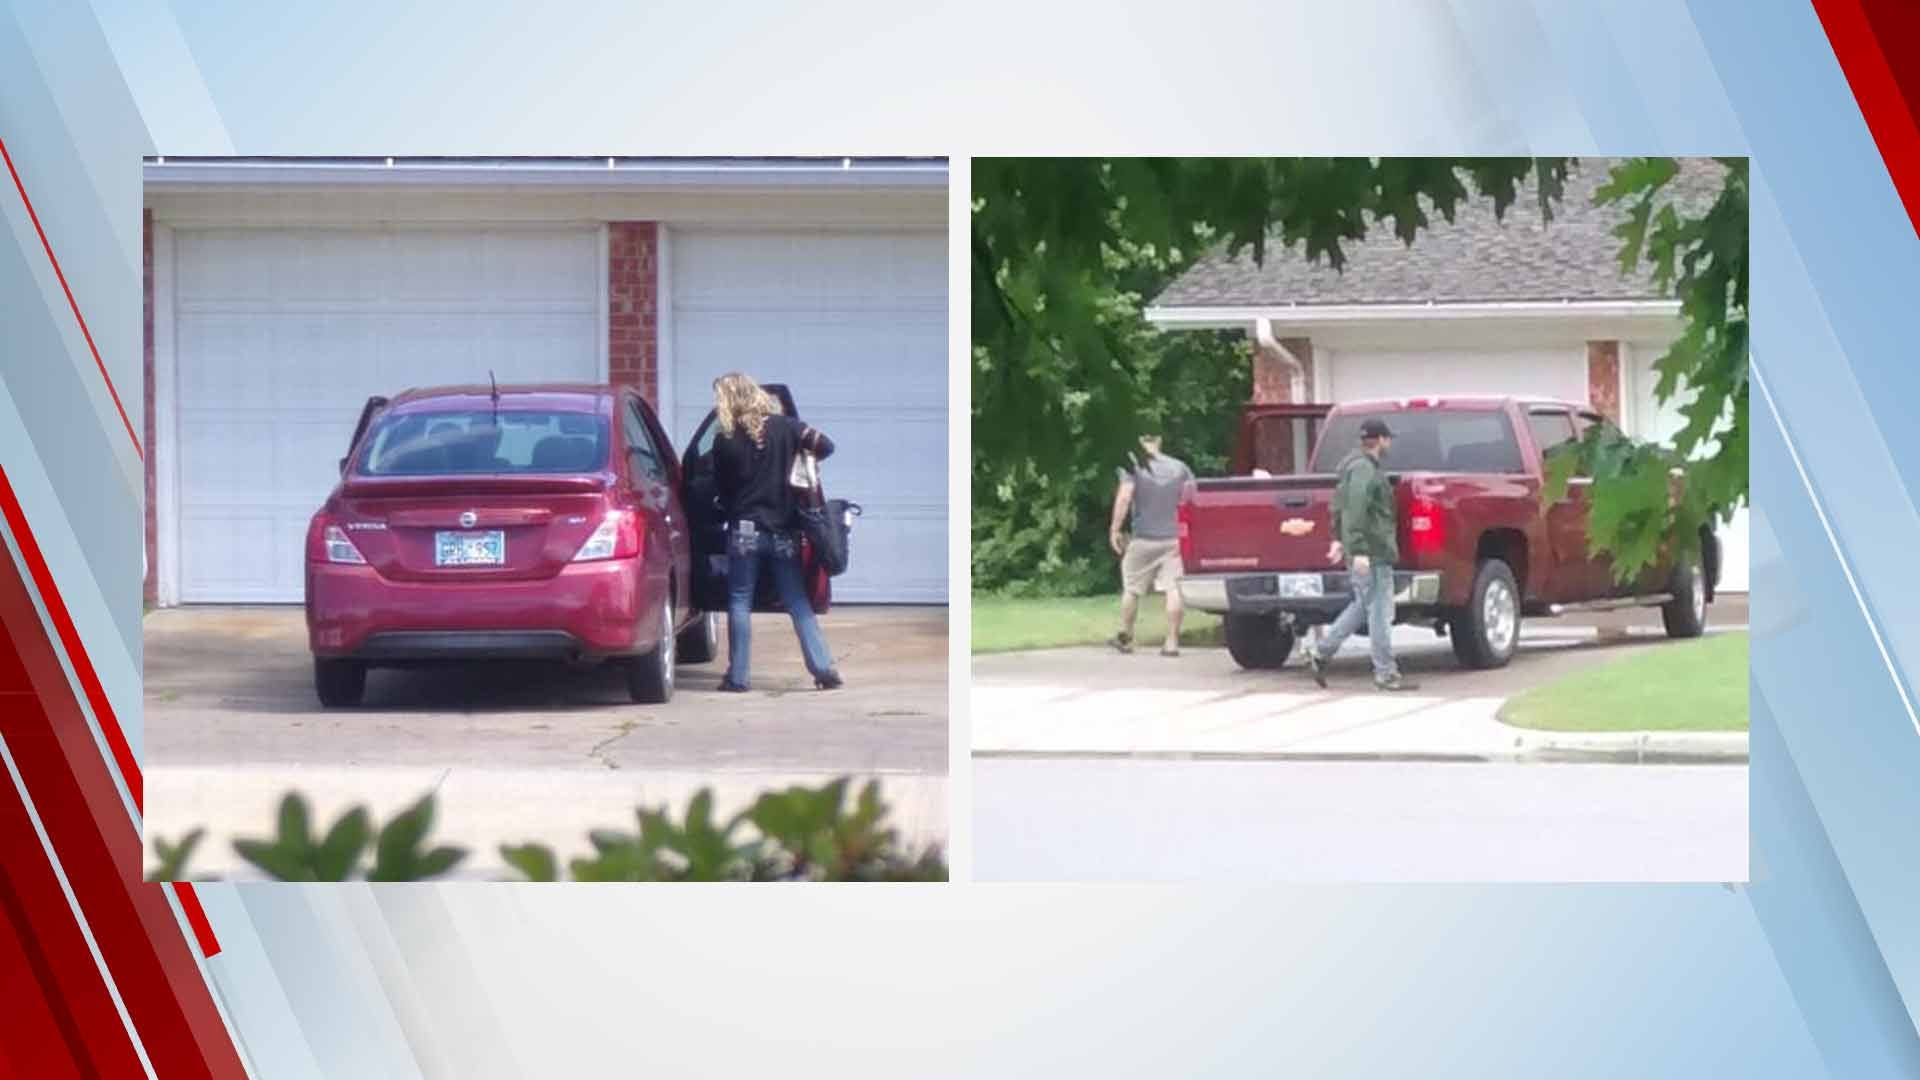 Tulsa Police Want To Speak To Persons Of Interest In House Burglary